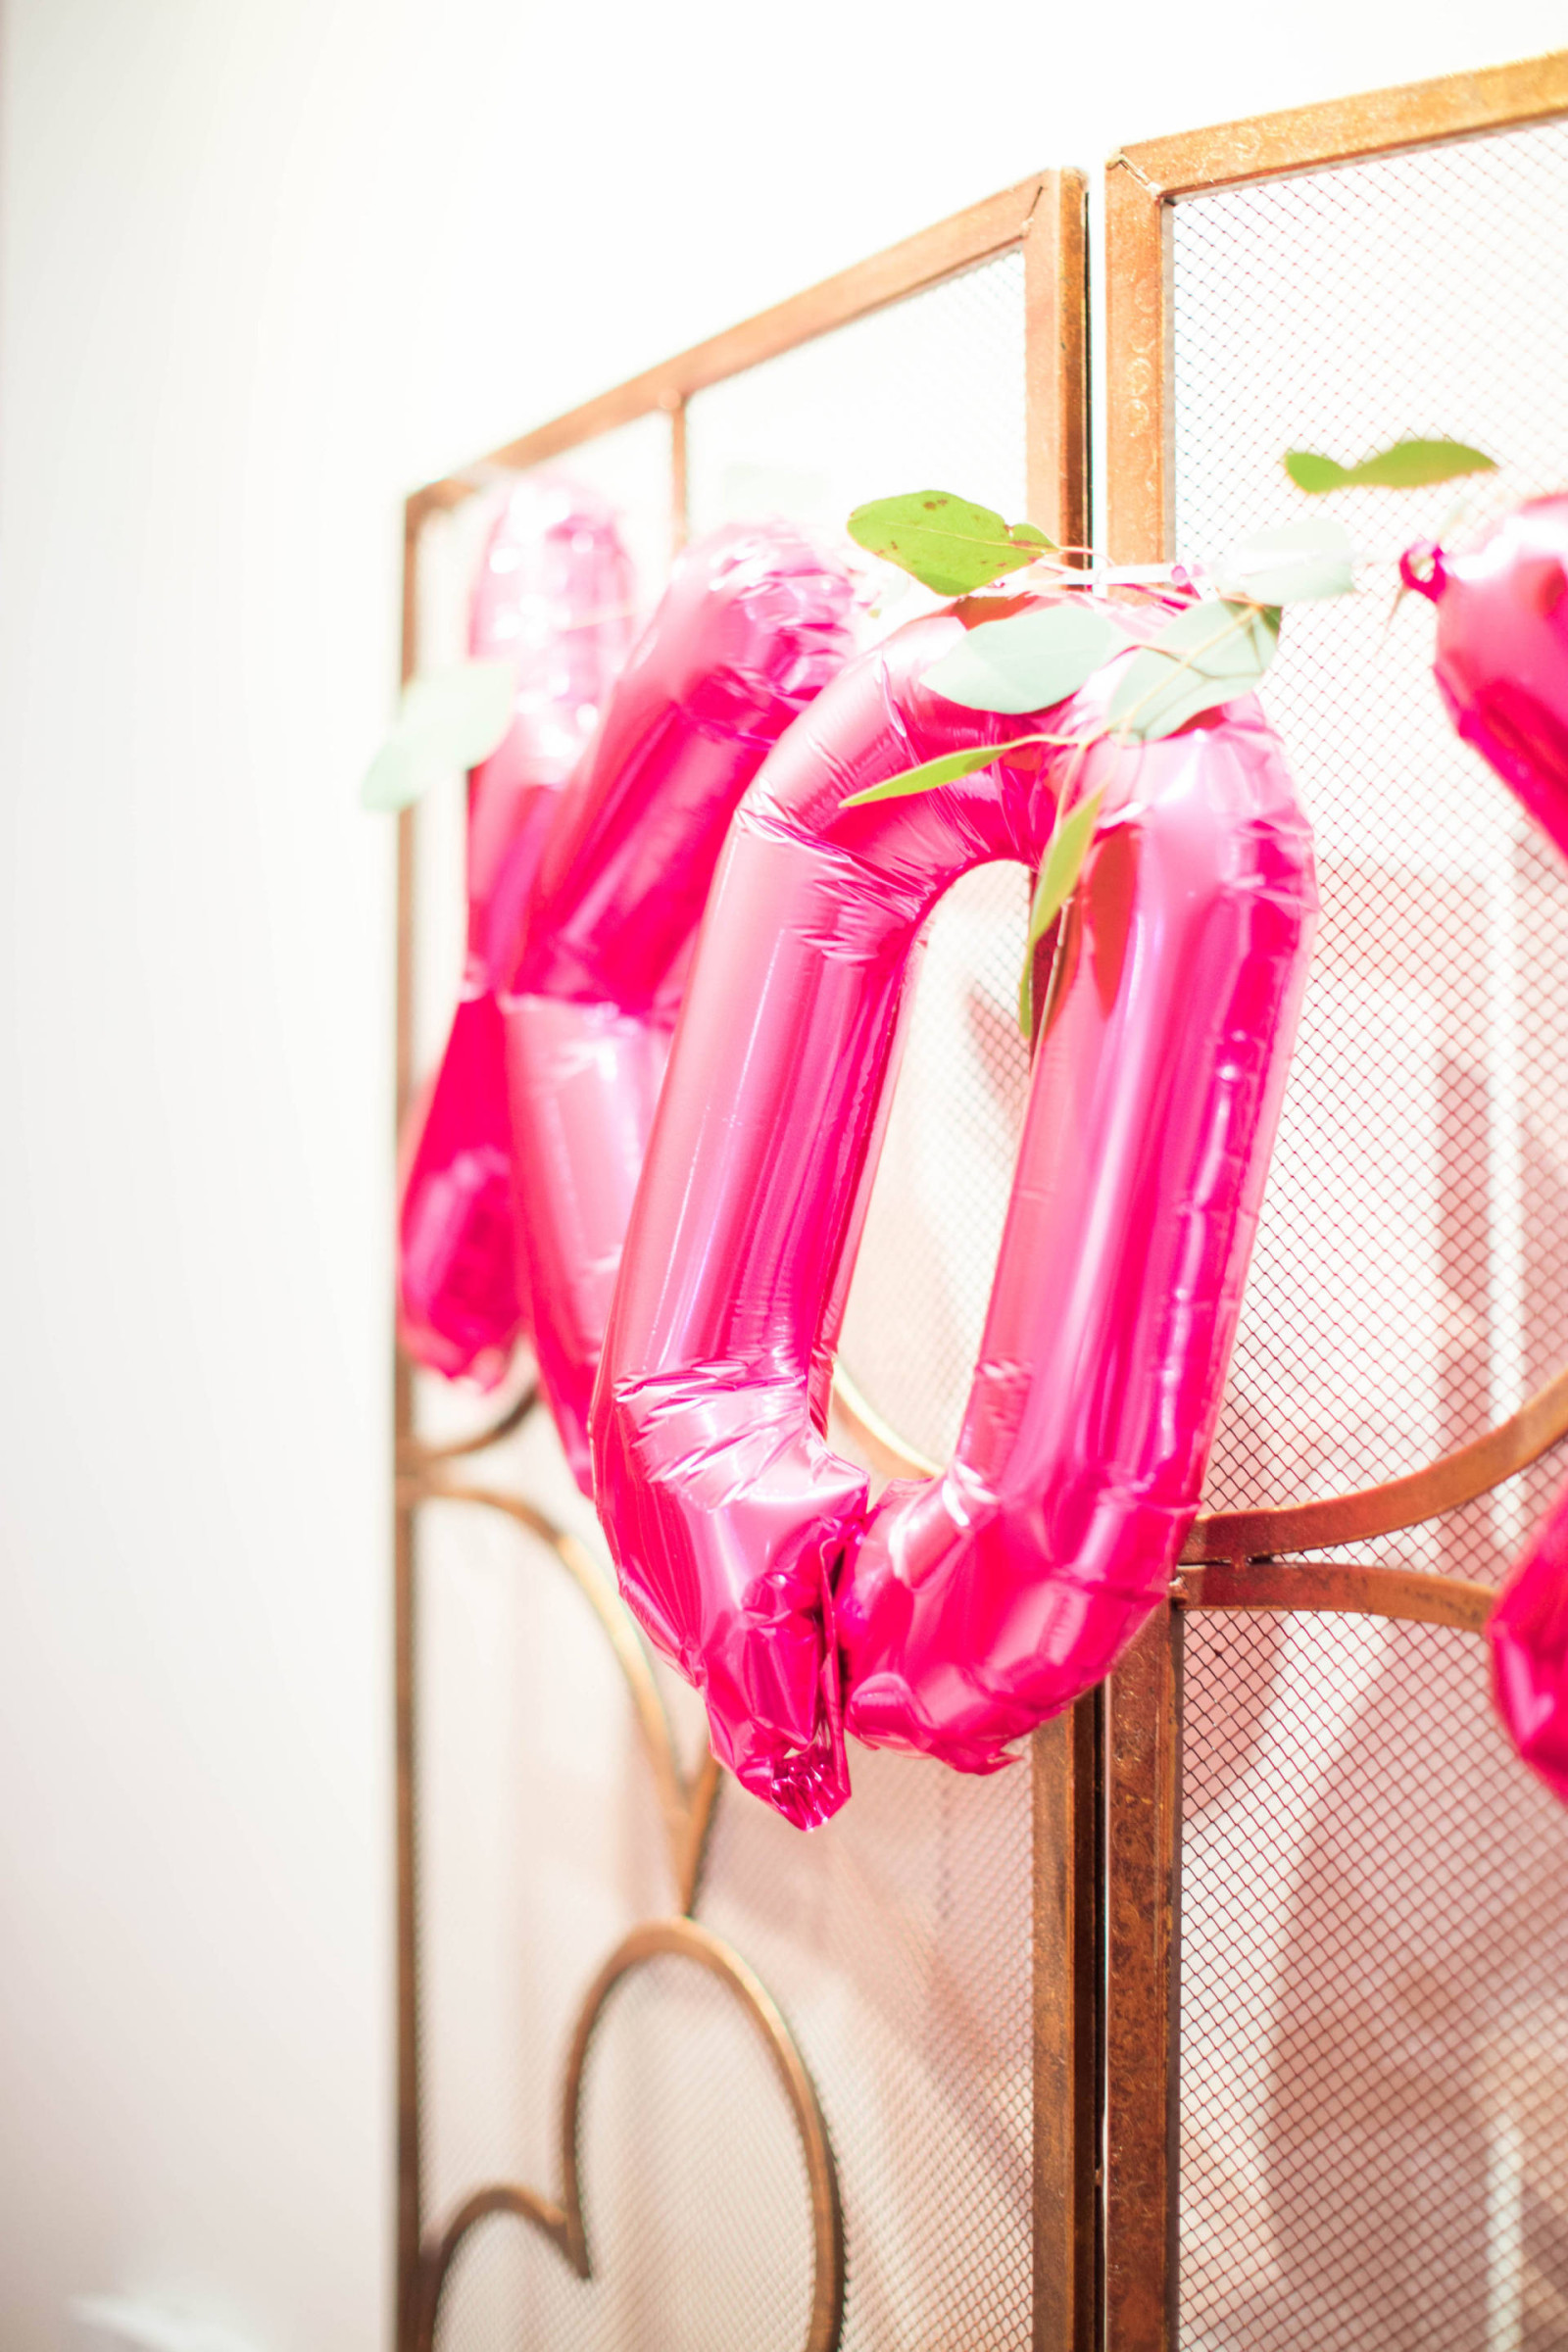 View More: http://megankernsphotography.pass.us/bouquetsandbubblyattheglassbox